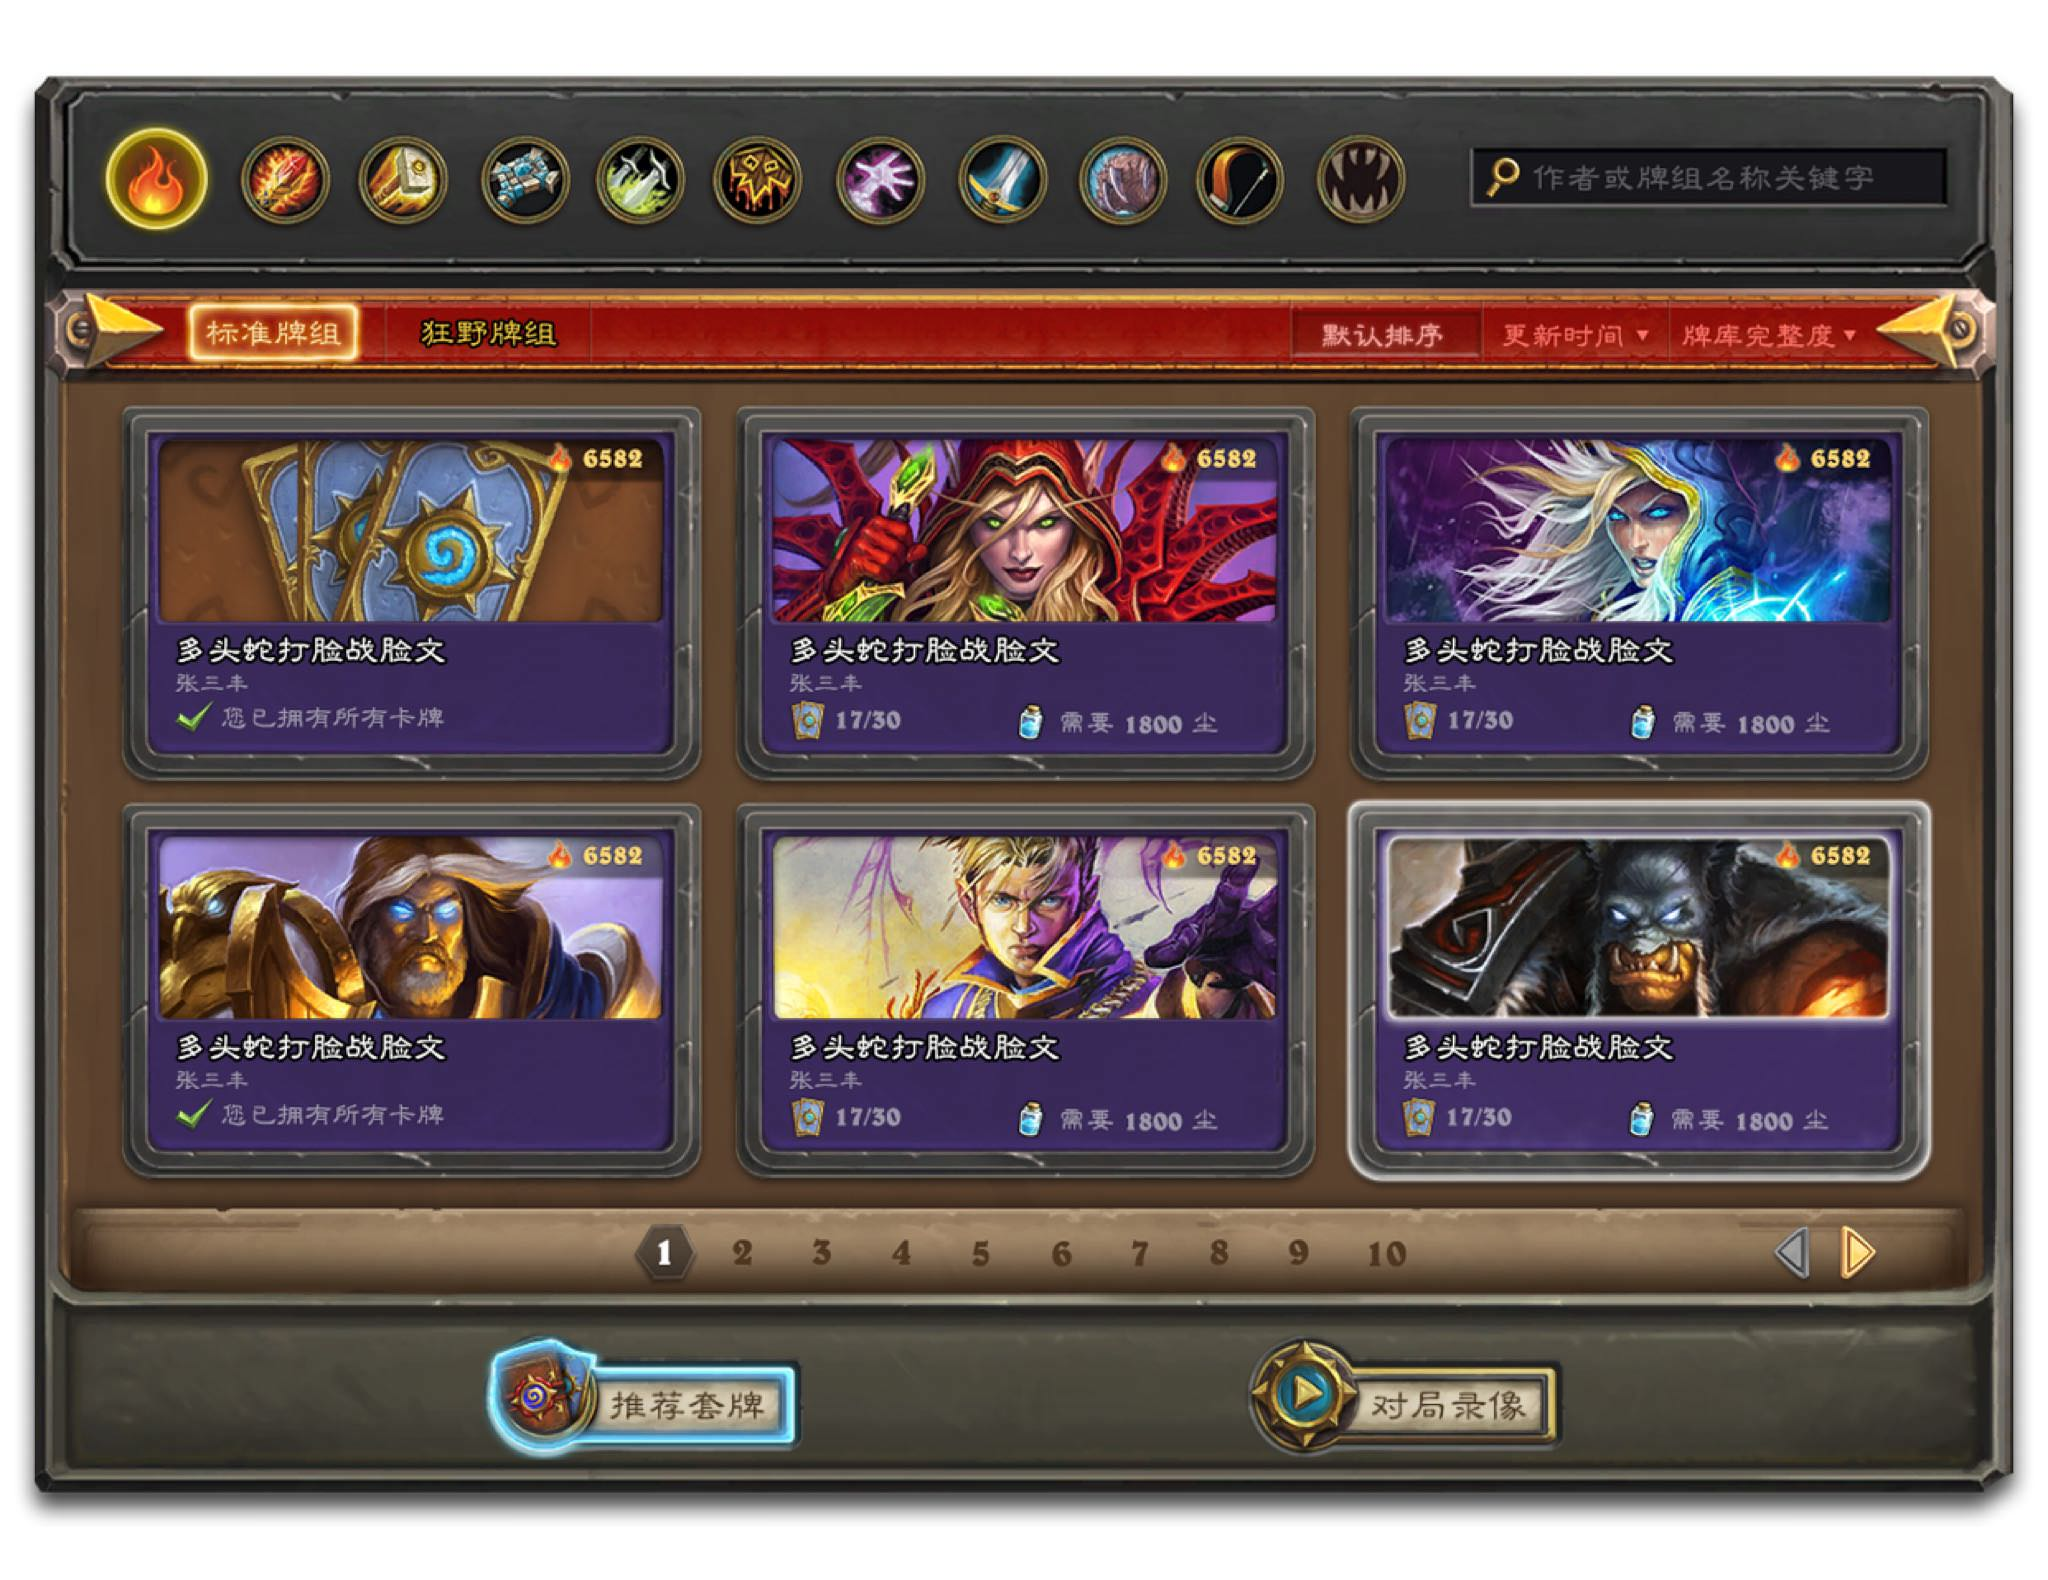 China Gets a Hearthstone Companion App - Game Replays, Deck